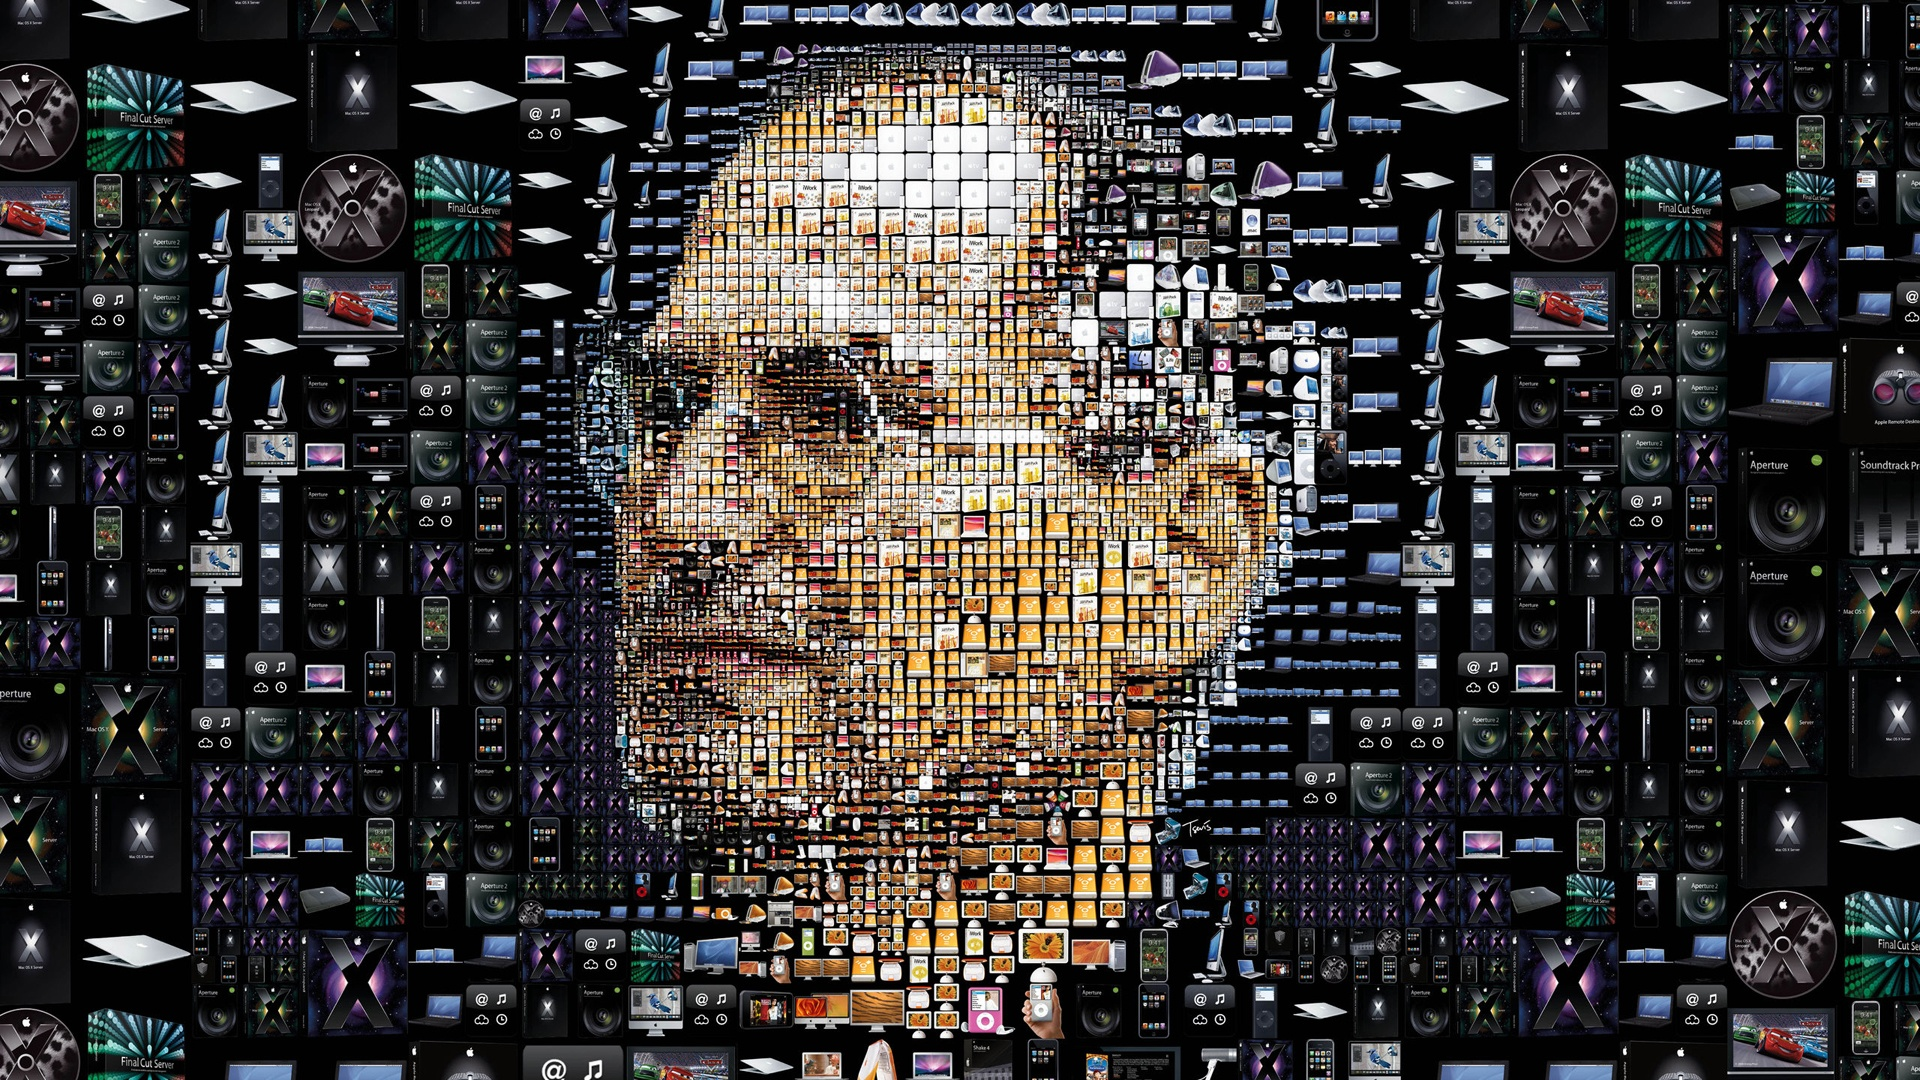 Apple receives more than 1 million Steve Jobs tributes, creates new 'Remembering Steve' page ...